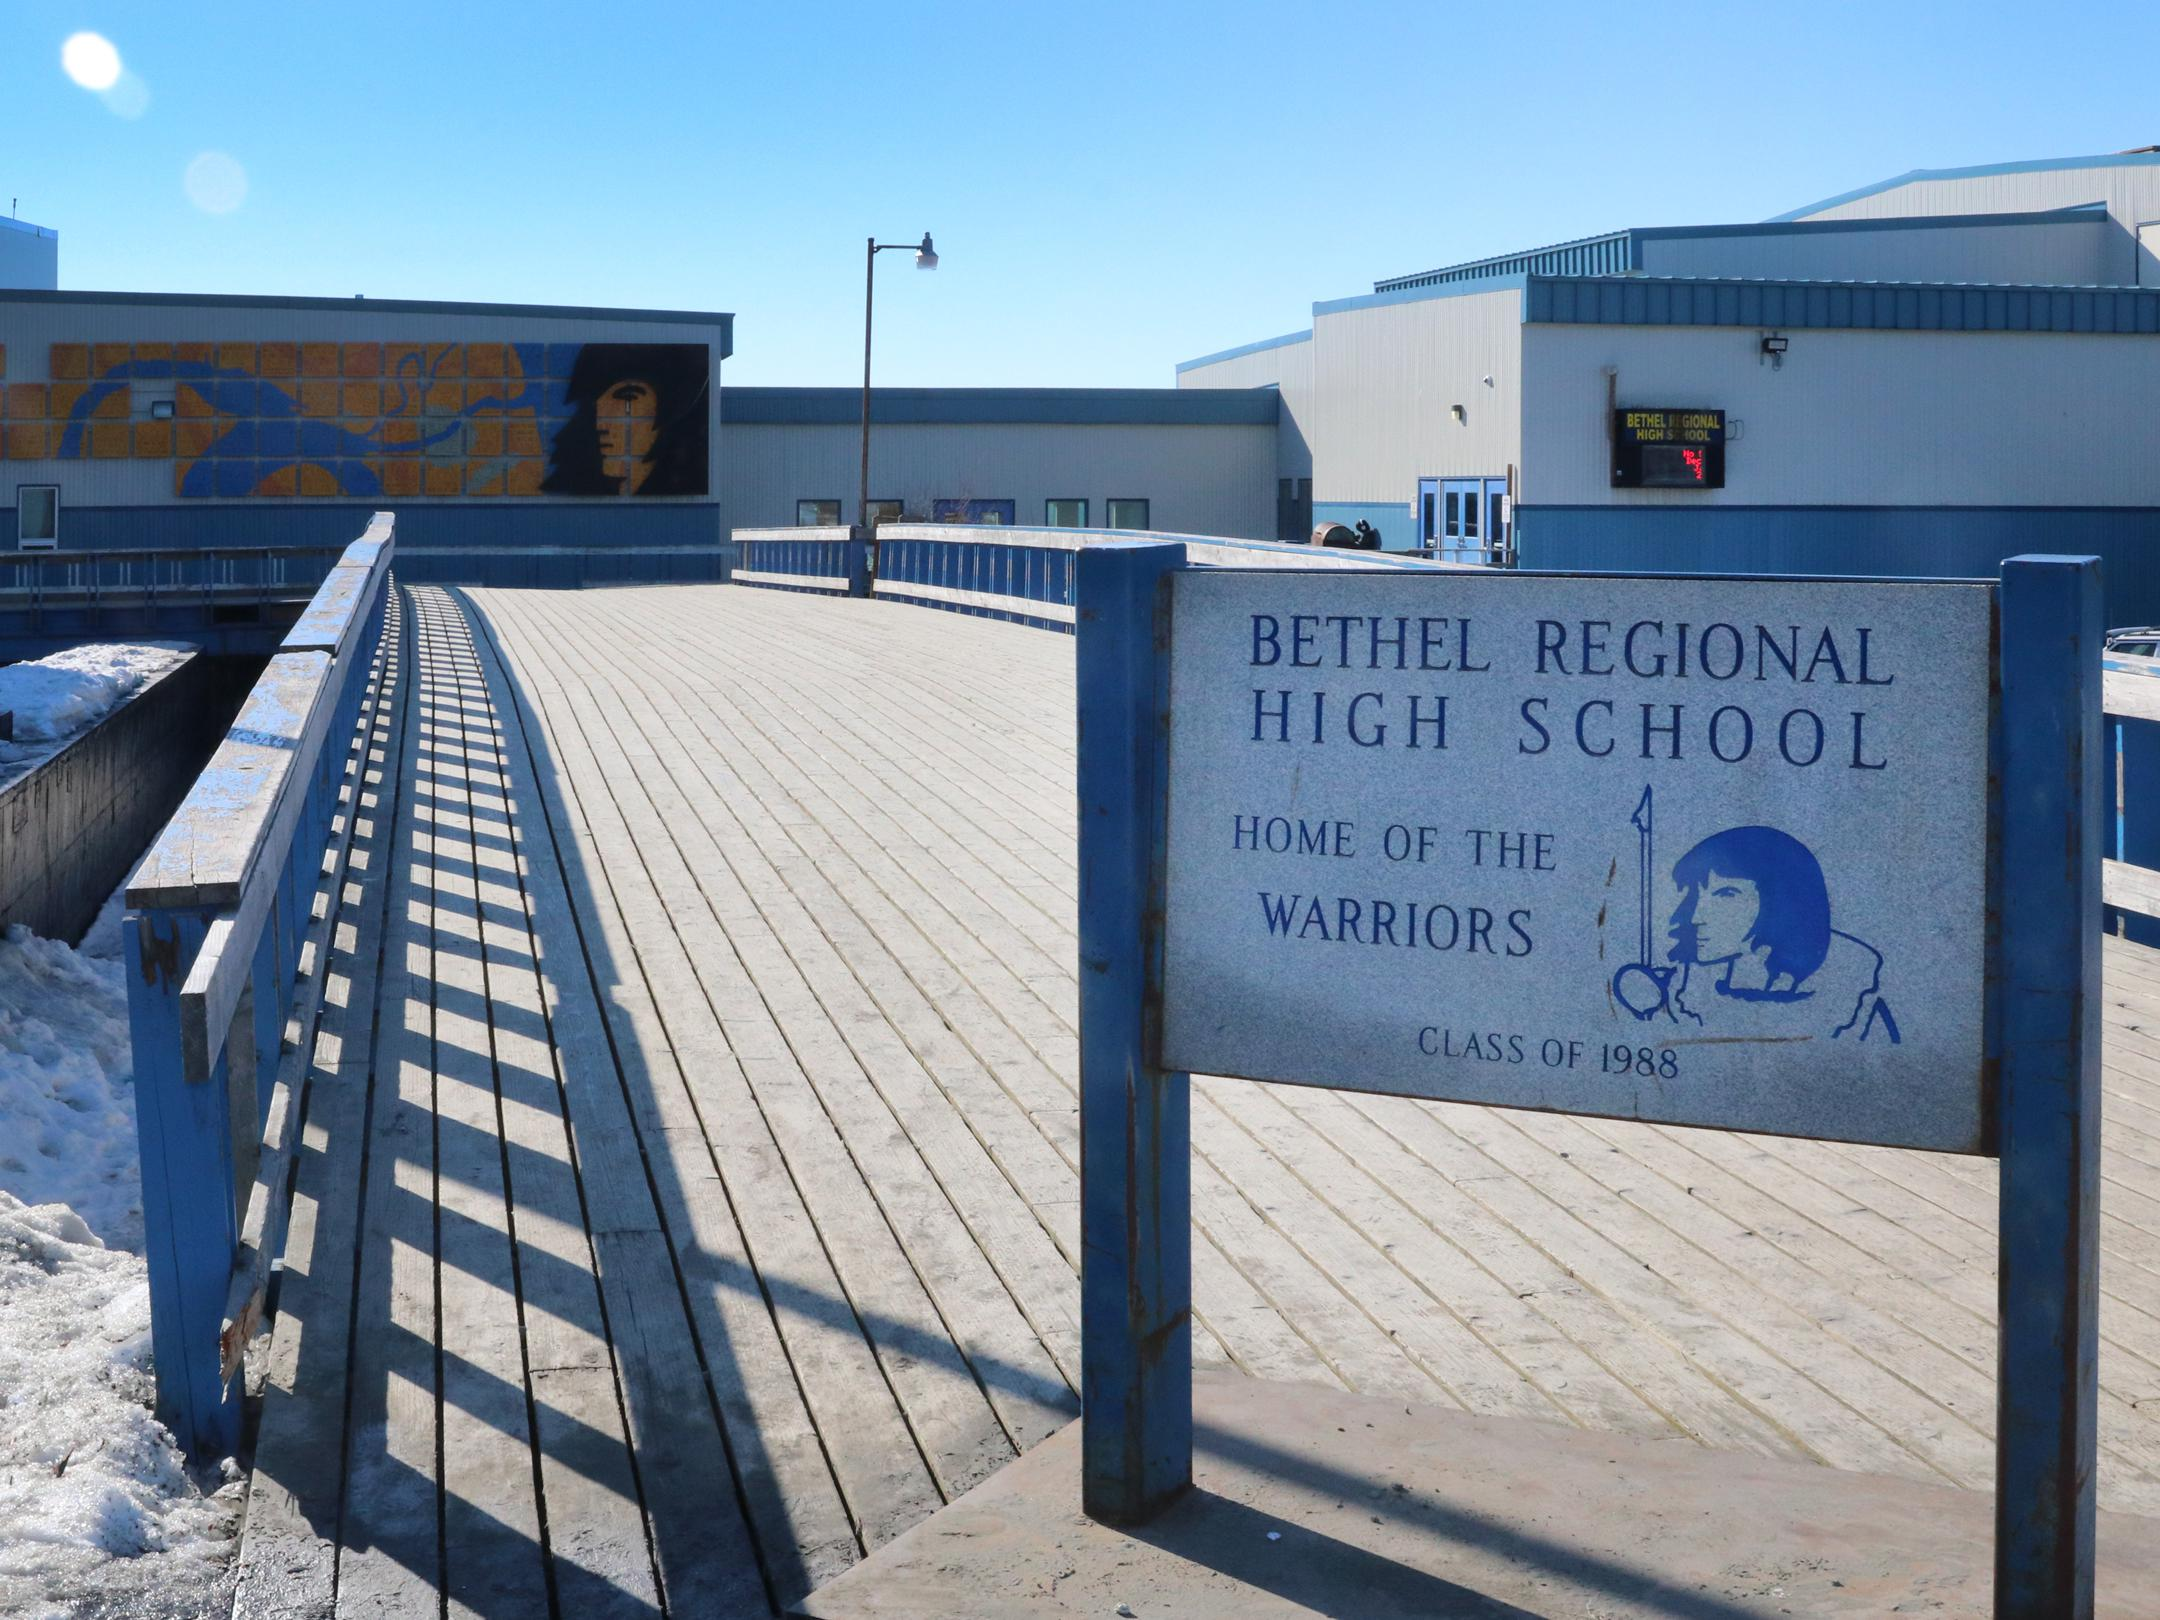 brhs offers new summer jobs program for students disabilities bethel regional high school brhs wants to prepare all high school students to have the same job opportunities a new state funded program will match